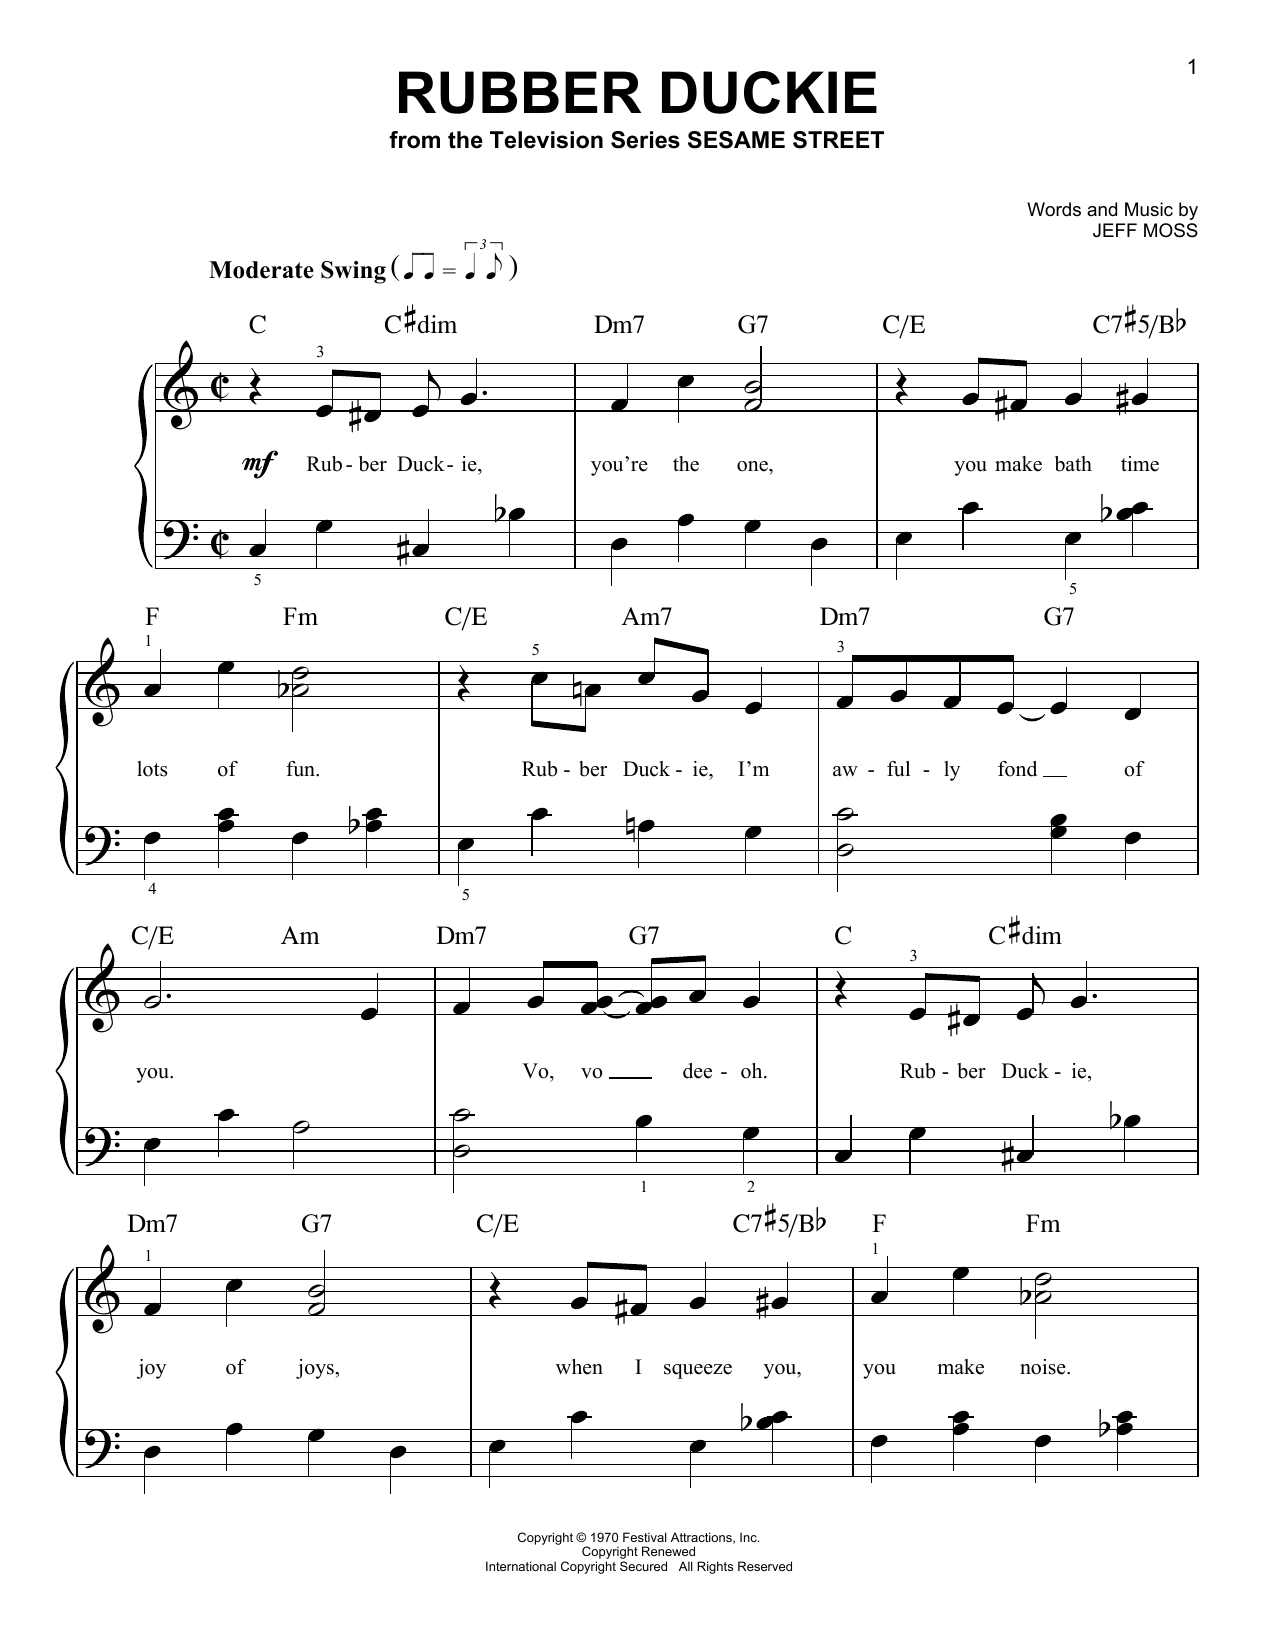 Jeff Moss Rubber Duckie sheet music notes and chords. Download Printable PDF.